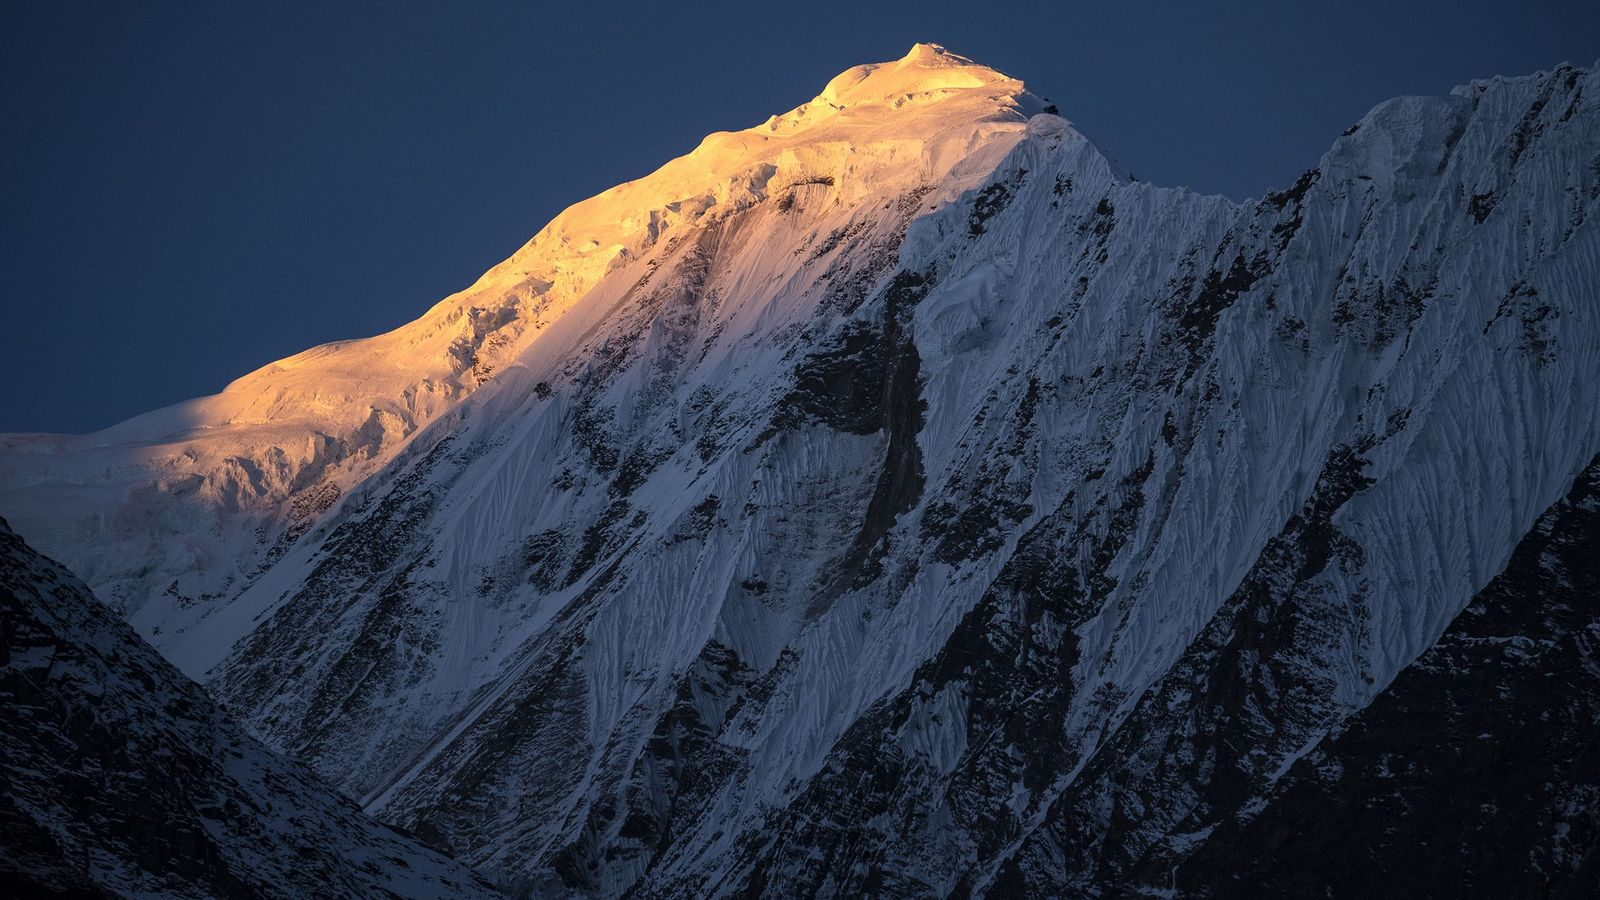 Sunrise strikes the Himalayan peaks on November 8, 2018, as seen from Manang, Nepal.